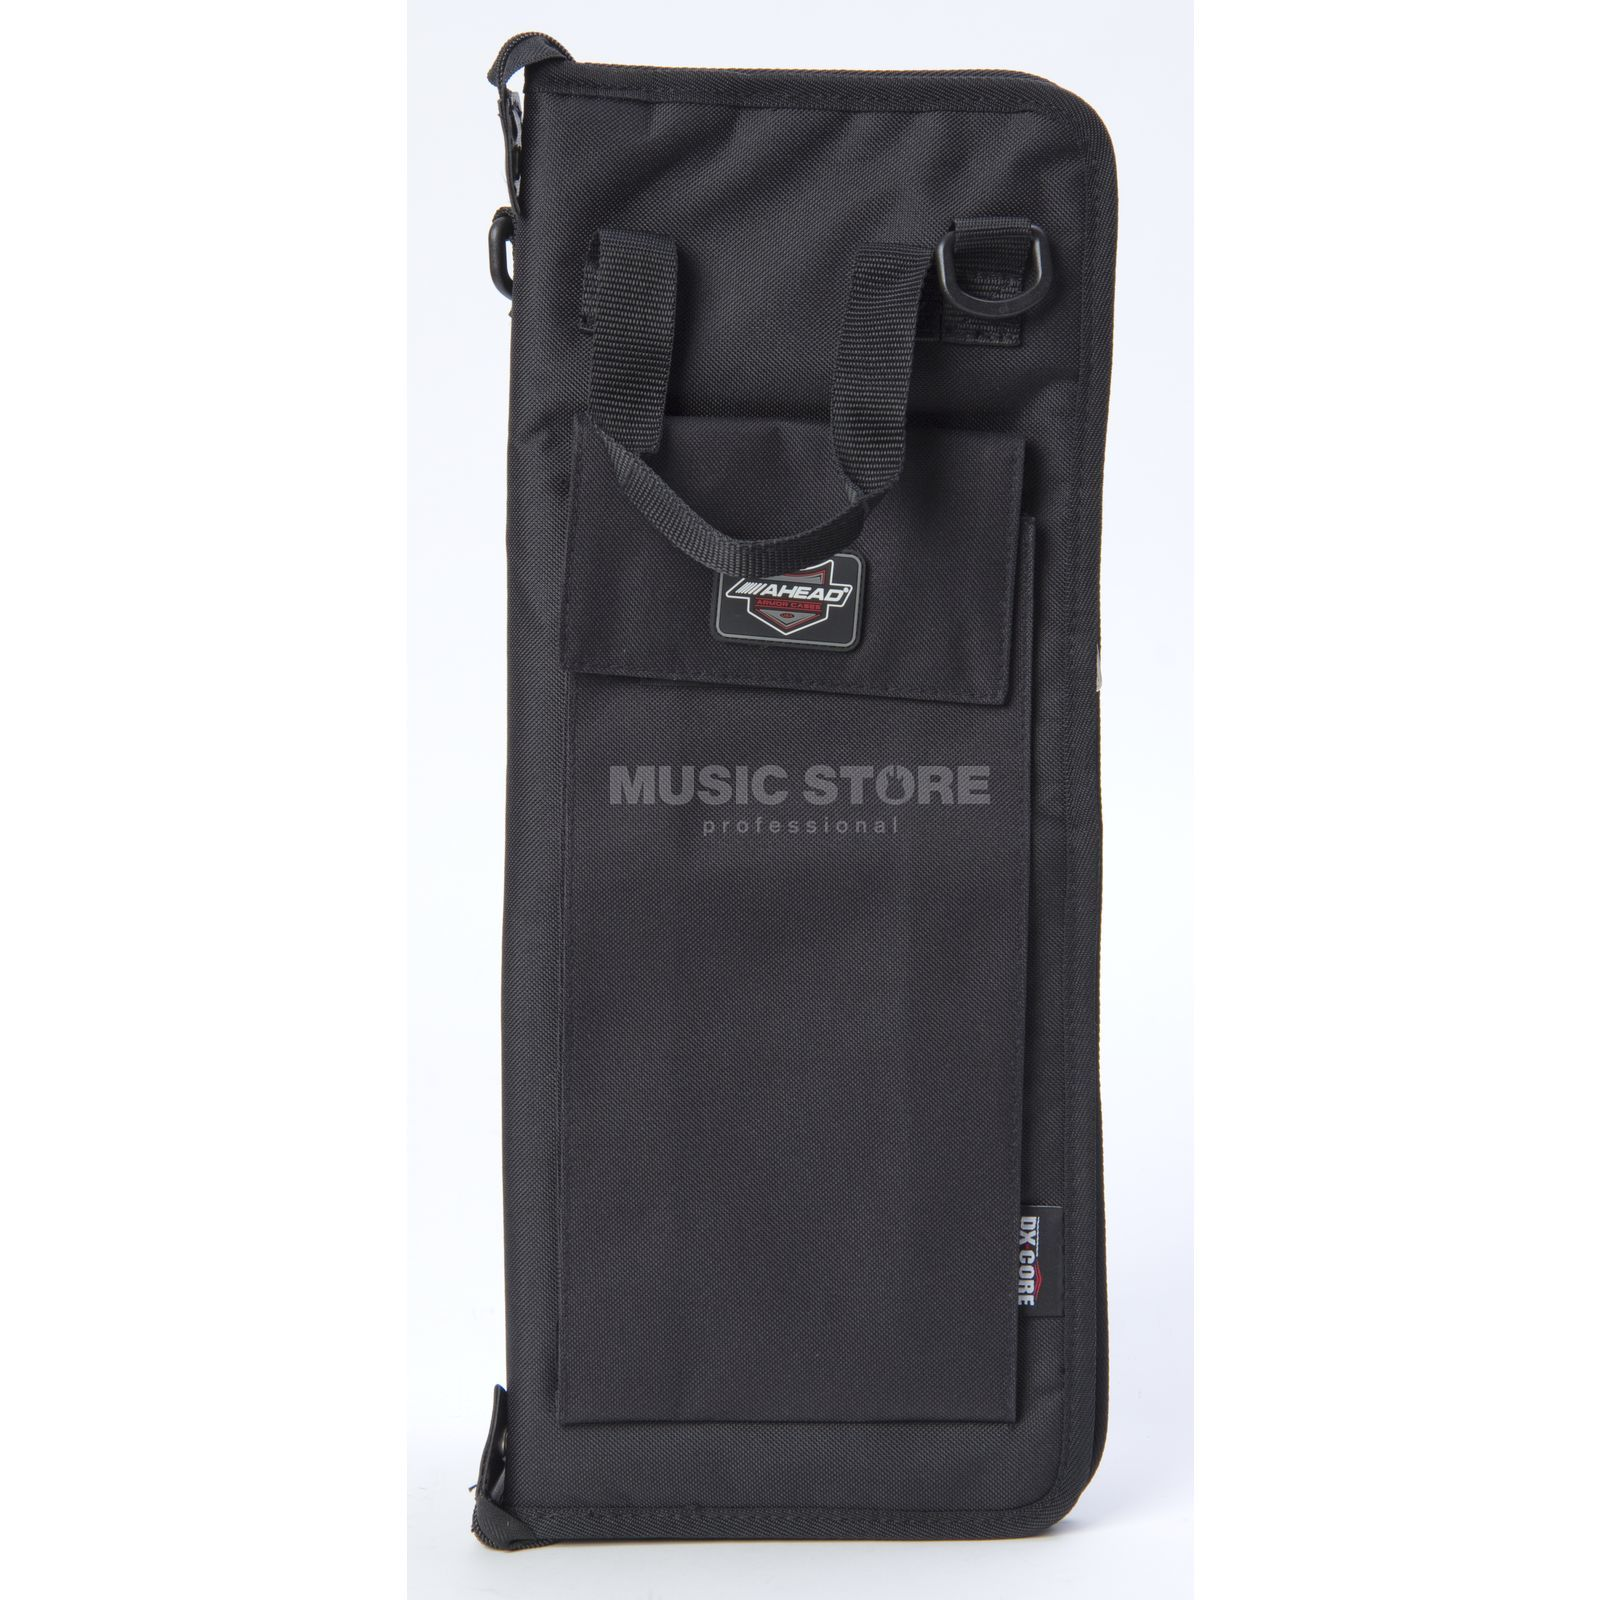 Ahead Armor Cases Pocket Stick Bag AA6025  Produktbild